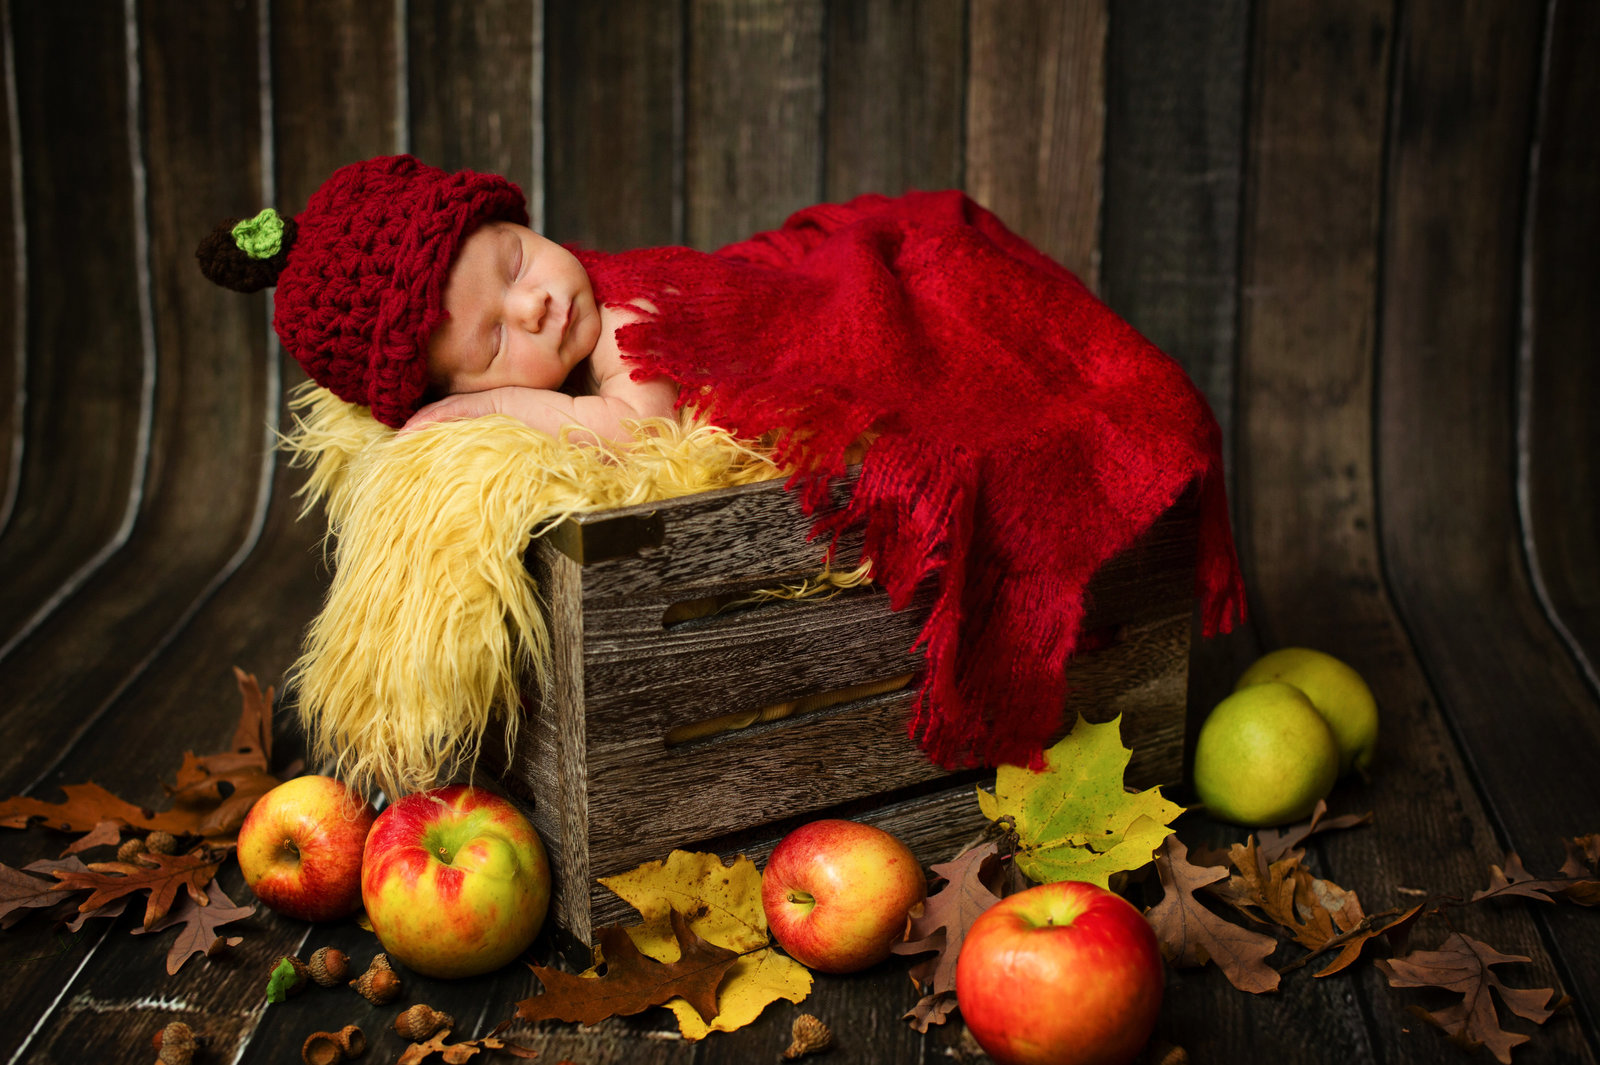 newborn baby sleeping in rustic box with crochet apple hat, apples and brown wood background